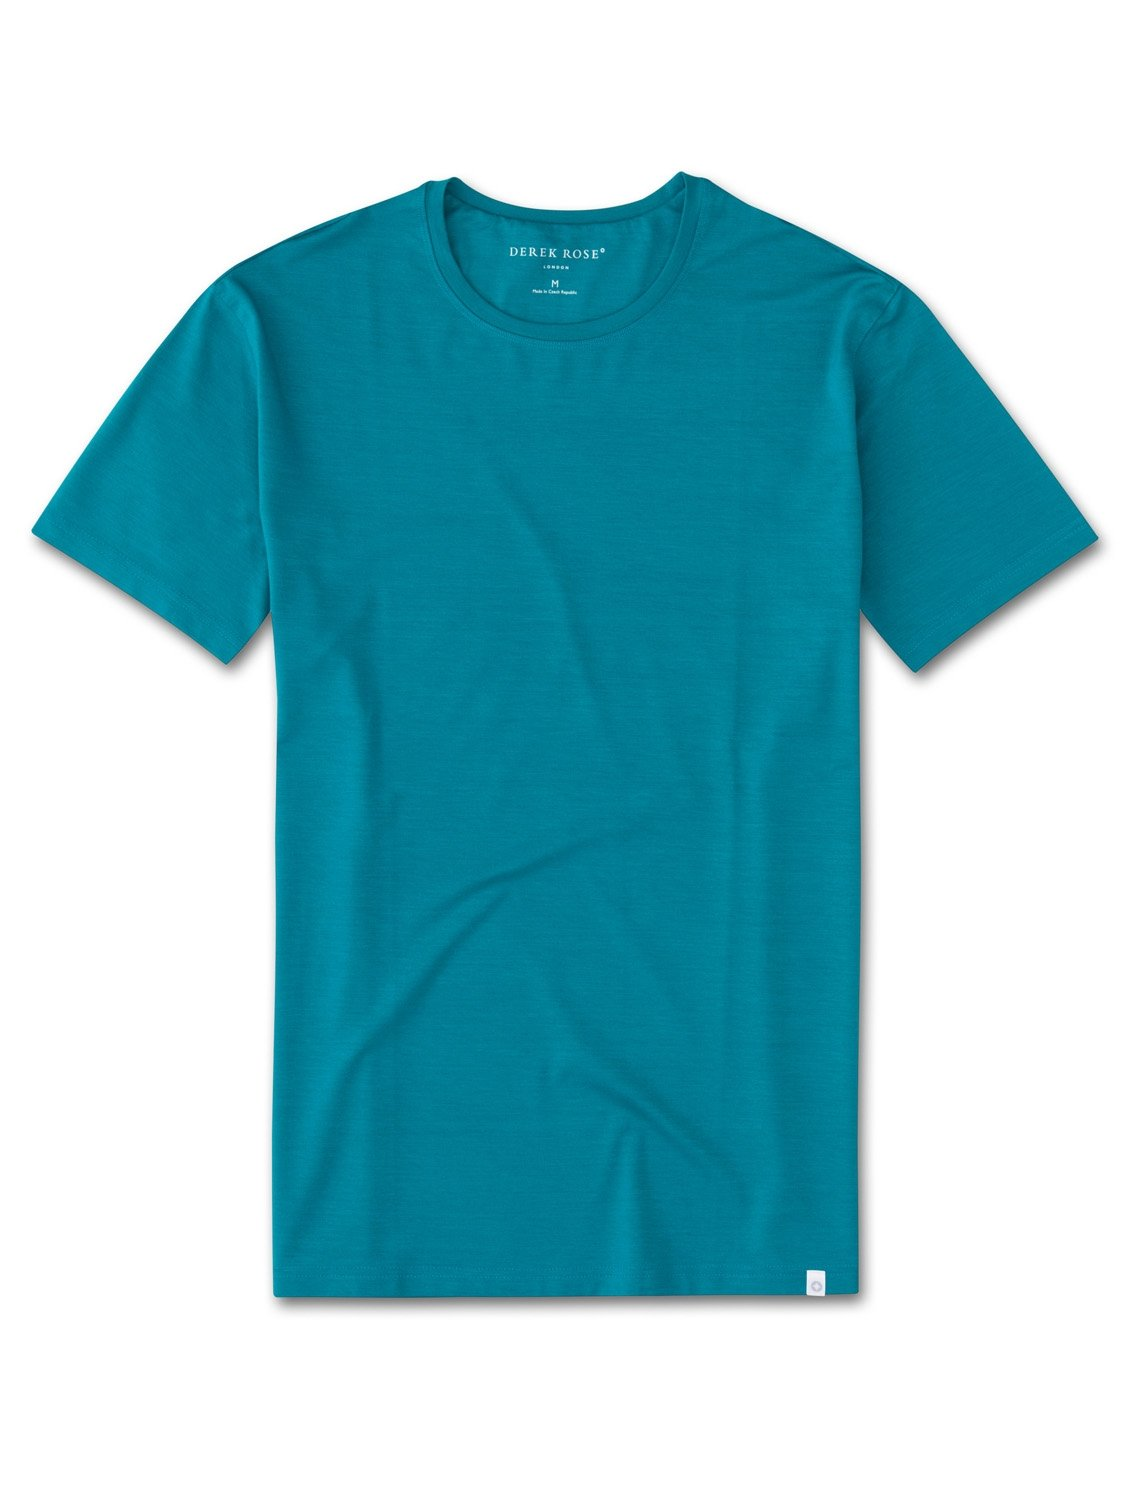 Derek Rose Men's Short Sleeve T-Shirt — Basel 4 Micro Modal Stretch Teal